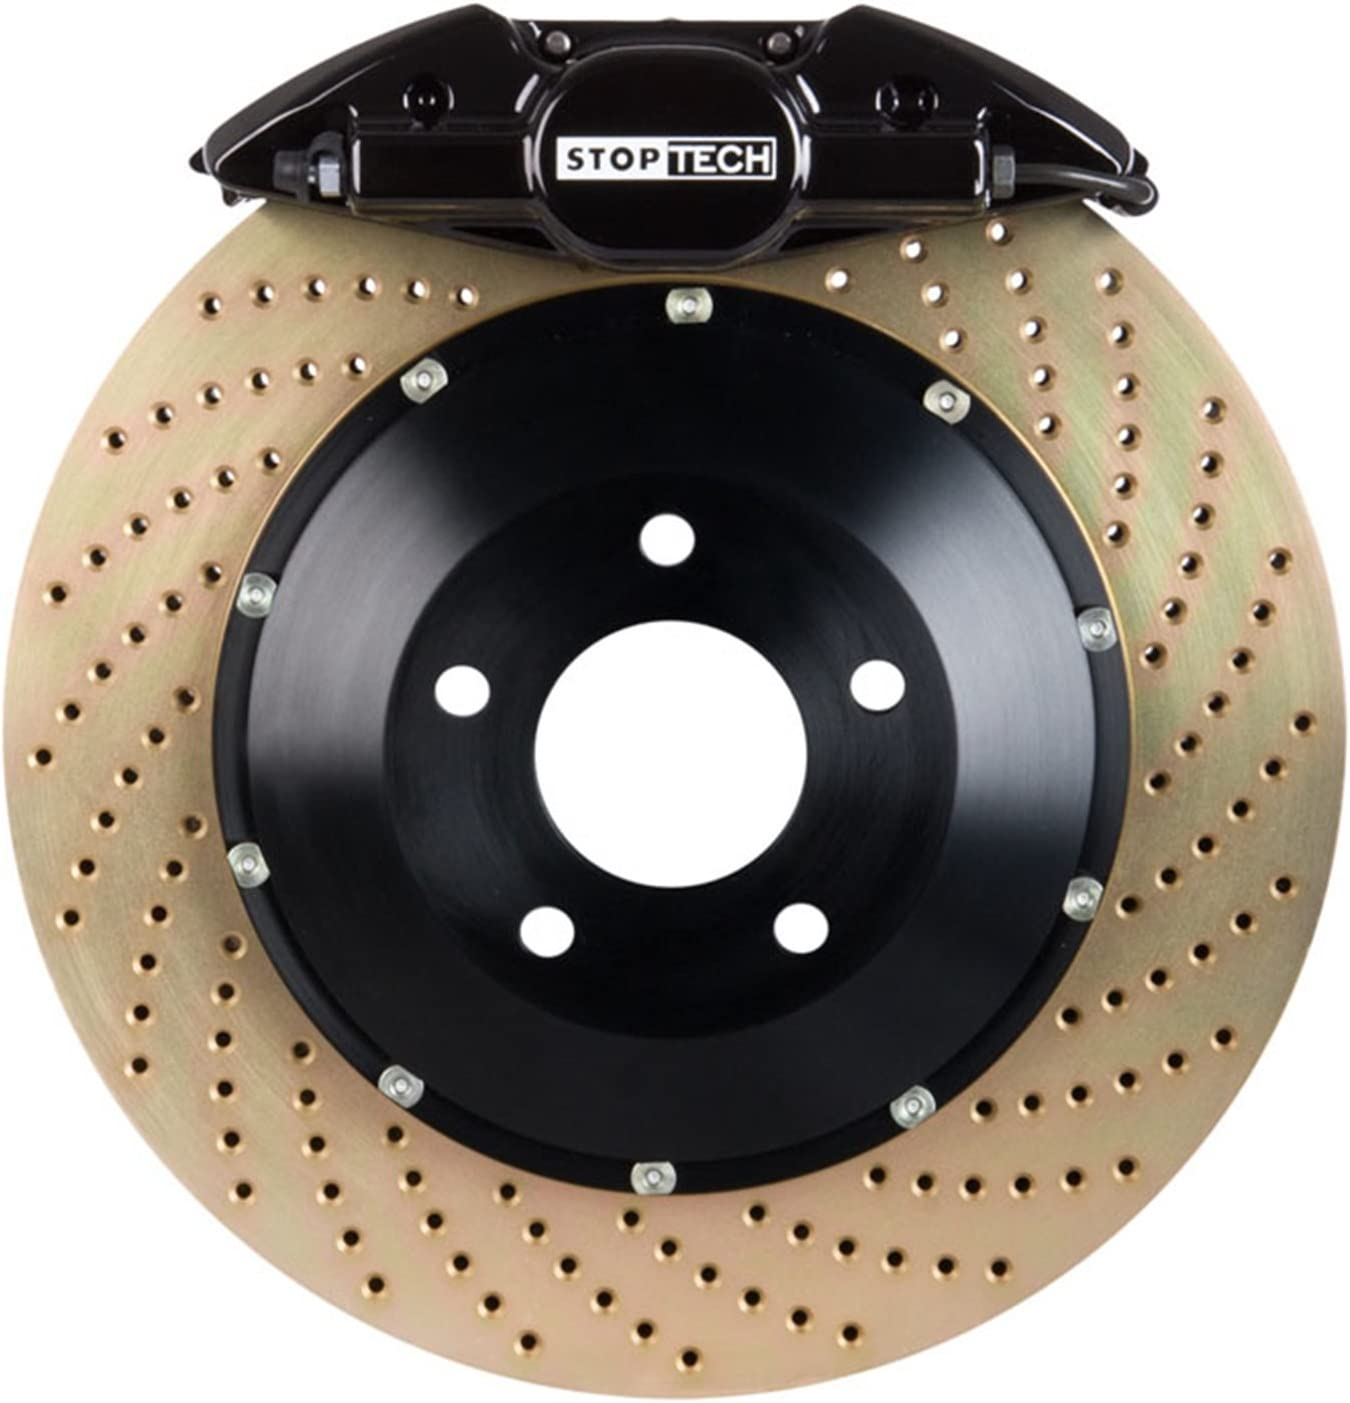 StopTech 83.130.0023.54 Big Brake Rotor Kit 2 Rear Brand Cheap Limited time trial price Sale Venue P 1 Piece